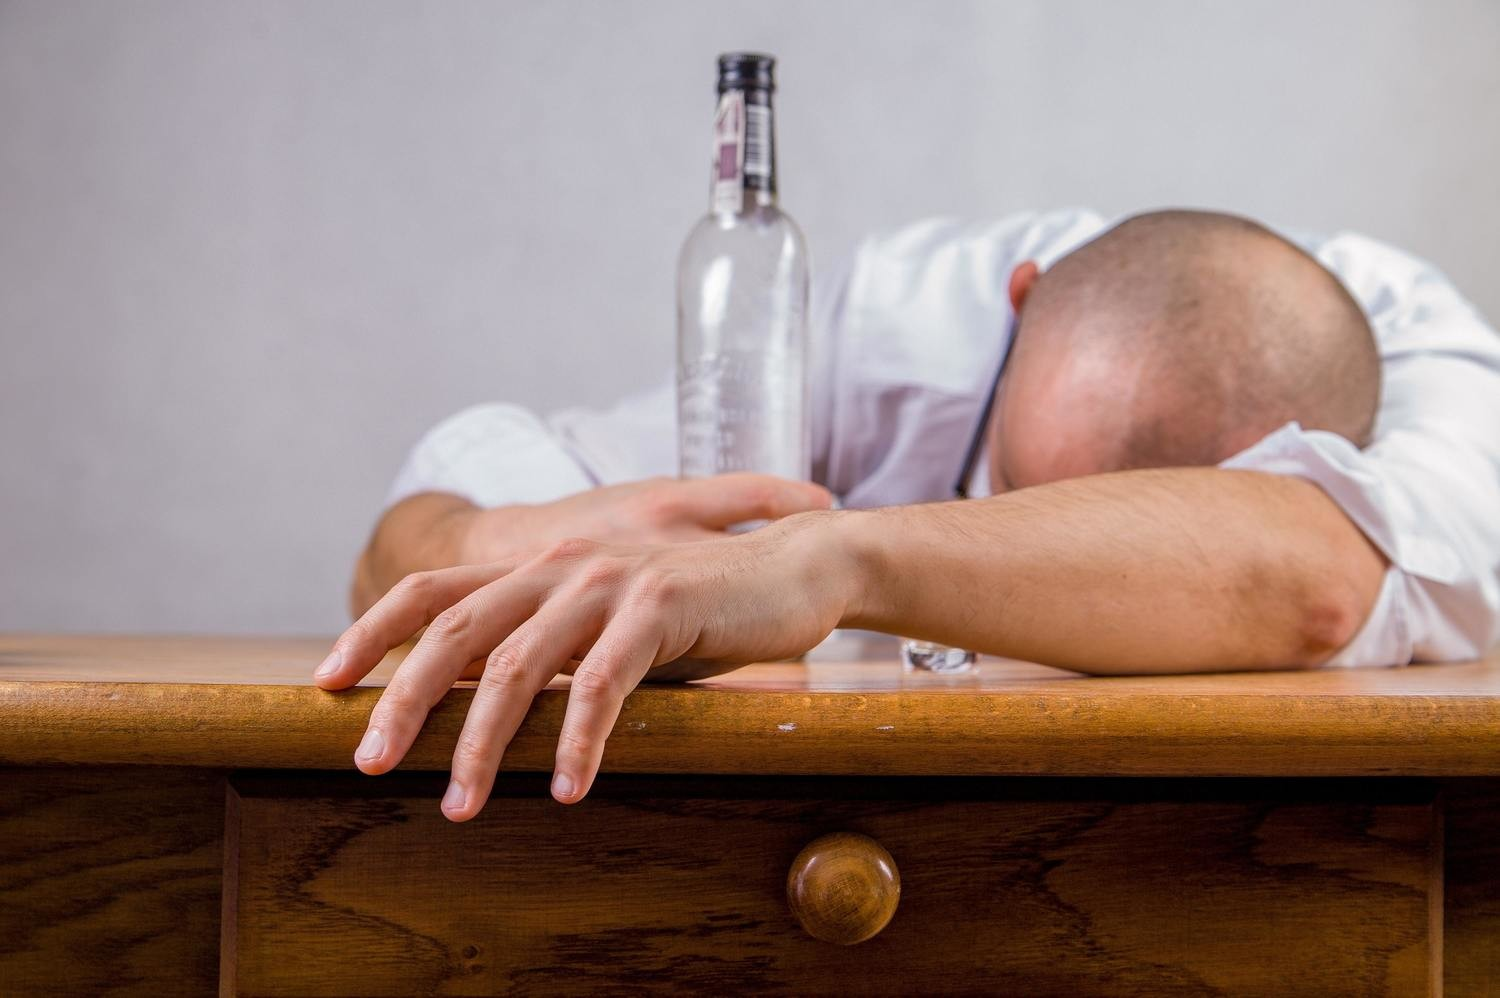 Stopping Drinking Well Being Spell, $39